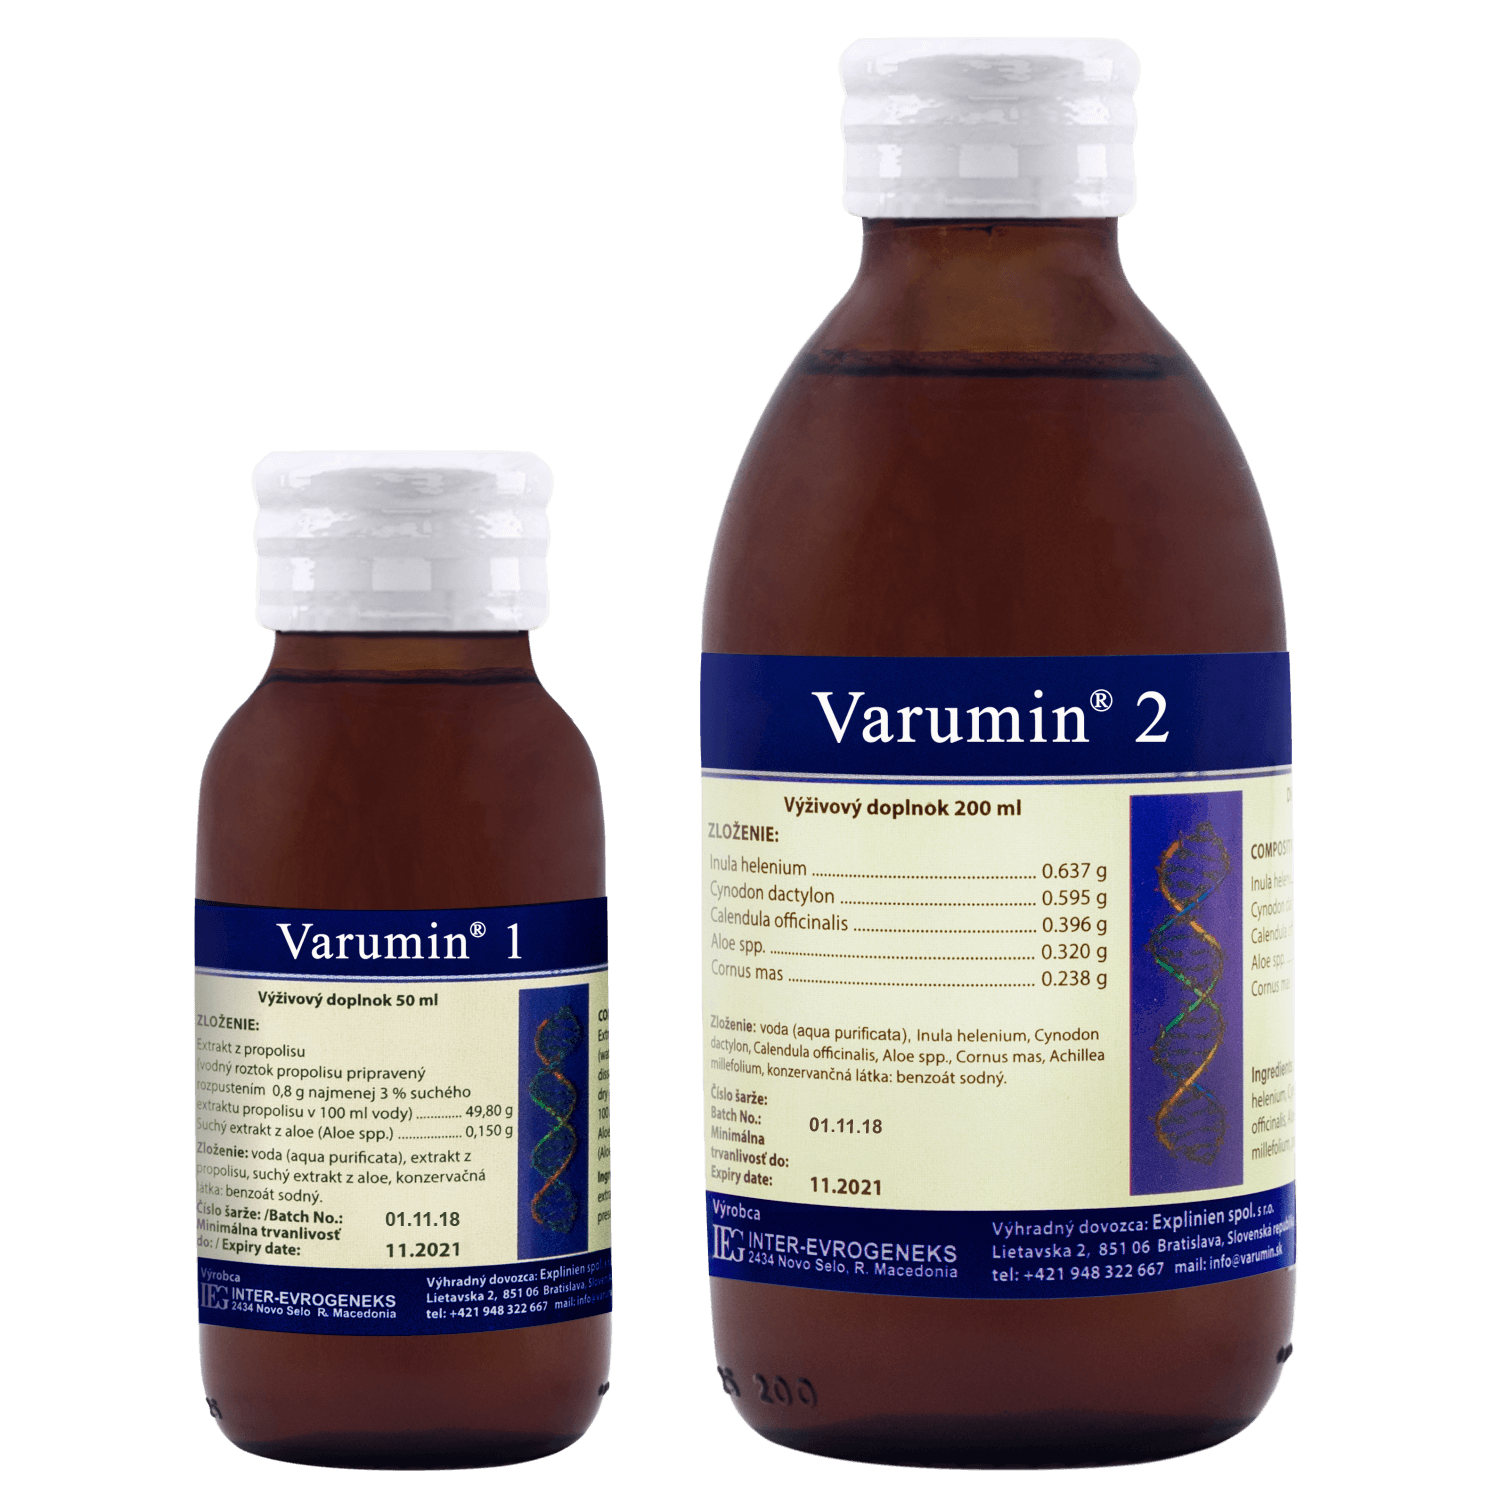 Varumin Anti-Cancer Product